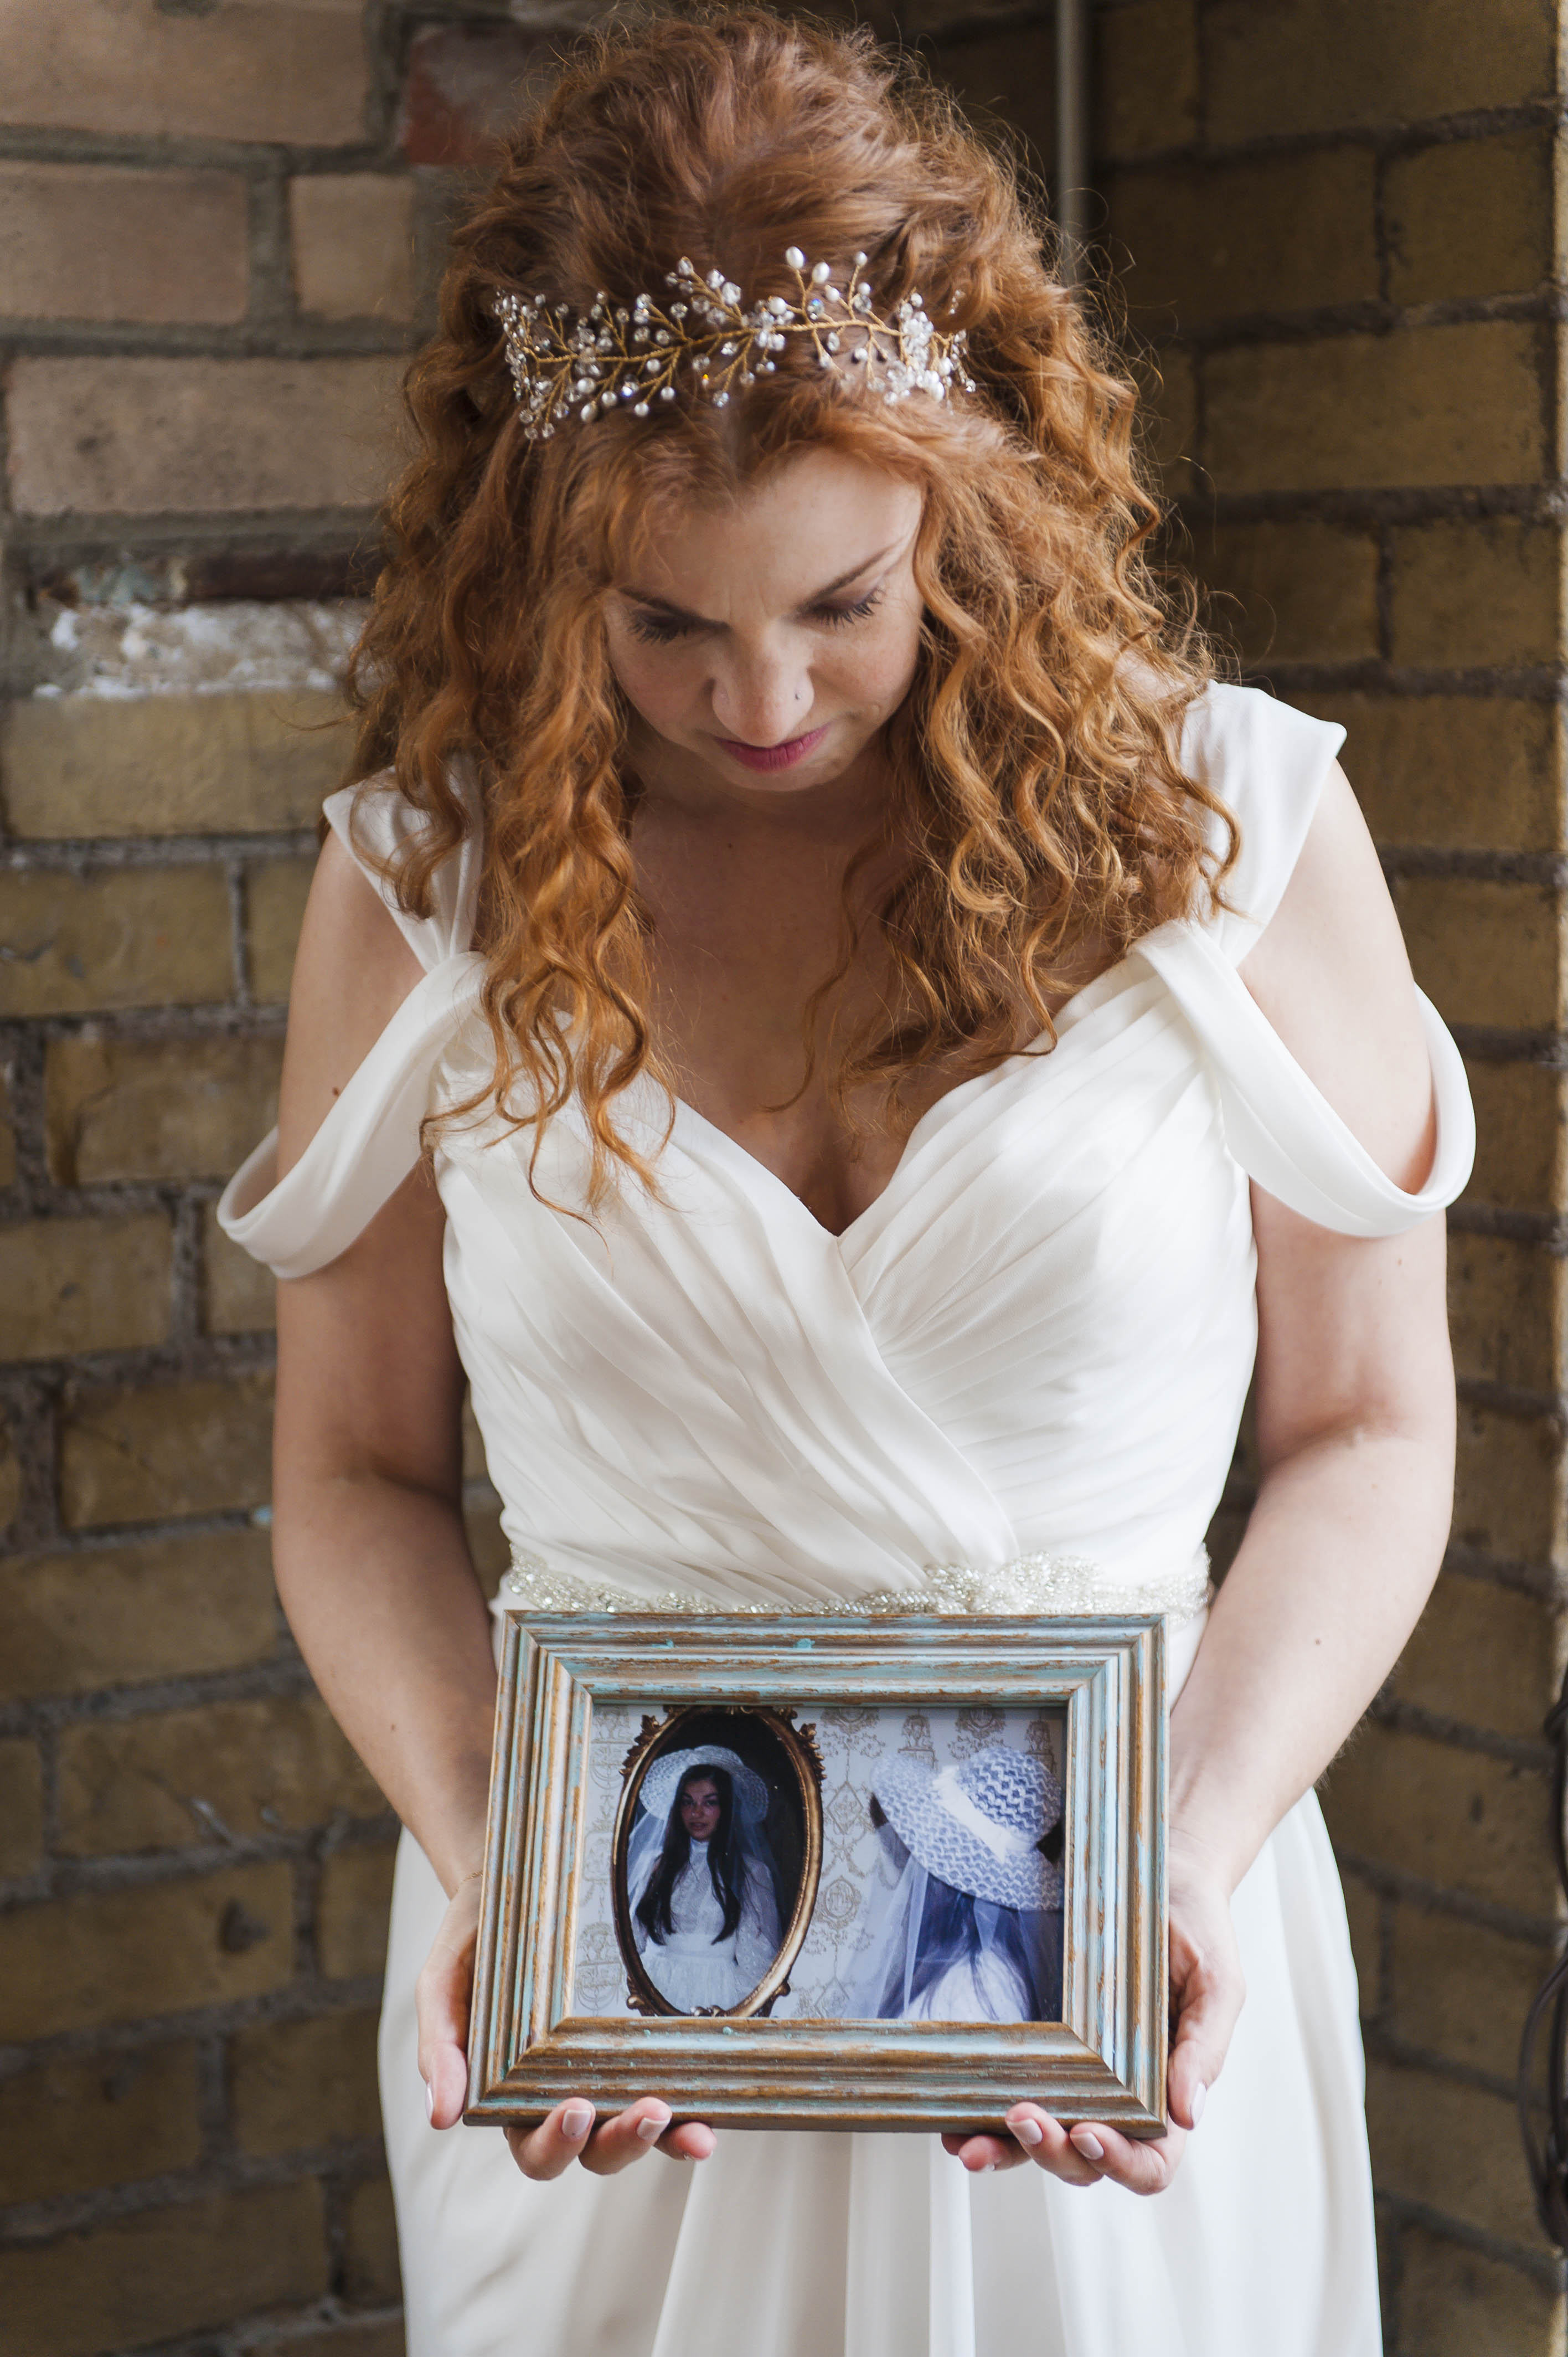 Tribute to Mother – Tribute to Family Member Who Has Passed Away – Offbeat Bride – St.Lawrence Market Wedding – Toronto Wedding Photographer